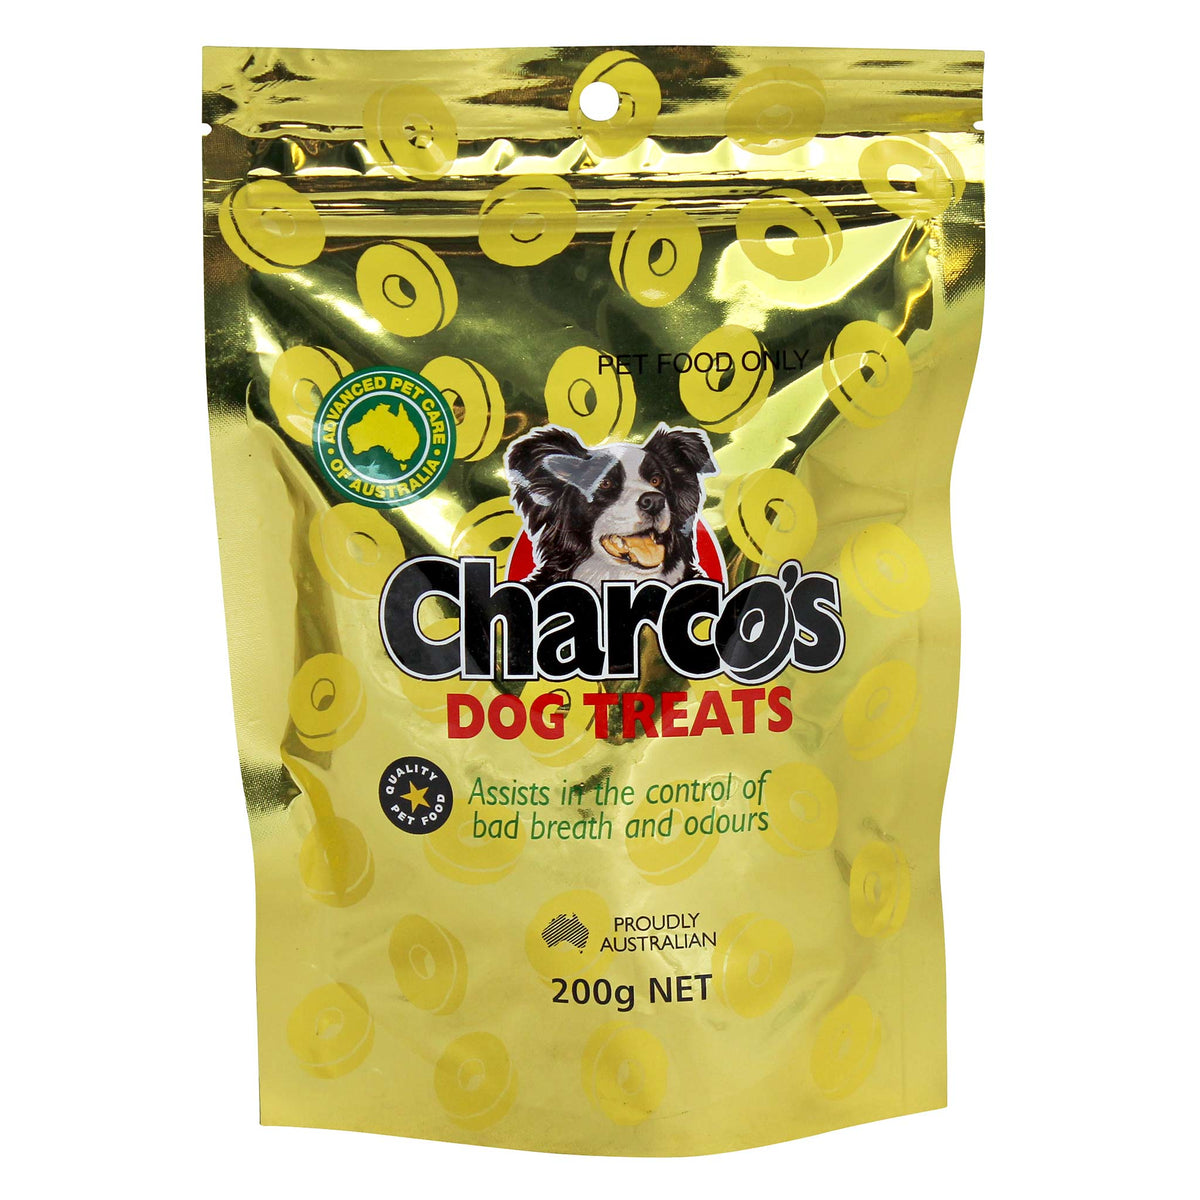 Charco's Charcoal Based Dog Treats